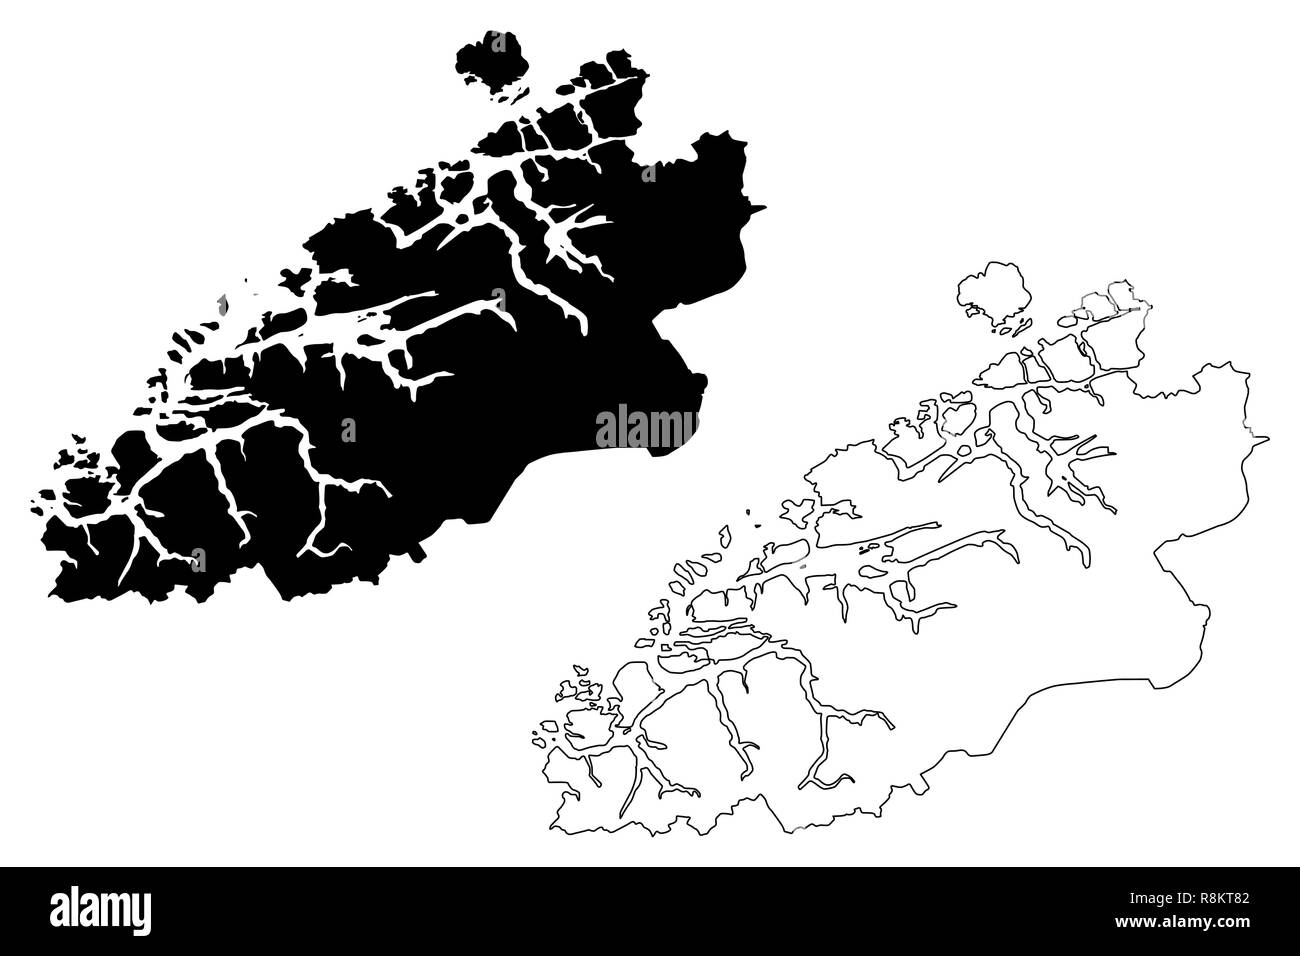 More og Romsdal (Administrative divisions of Norway, Kingdom of Norway) map vector illustration, scribble sketch More and Romsdal fylke map - Stock Image